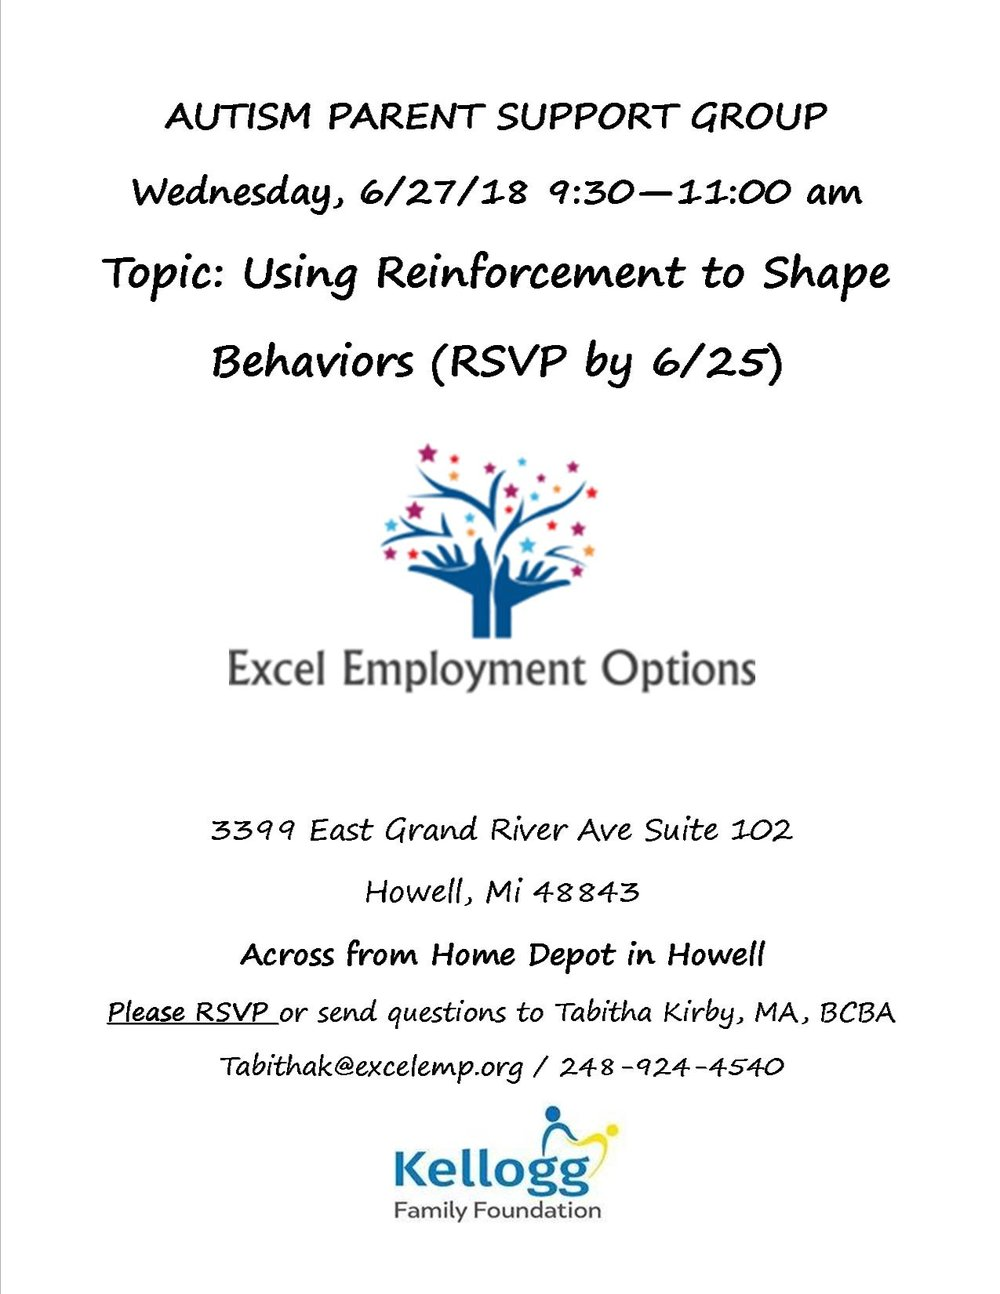 Autism Parent Support Group 6.27.18.jpg